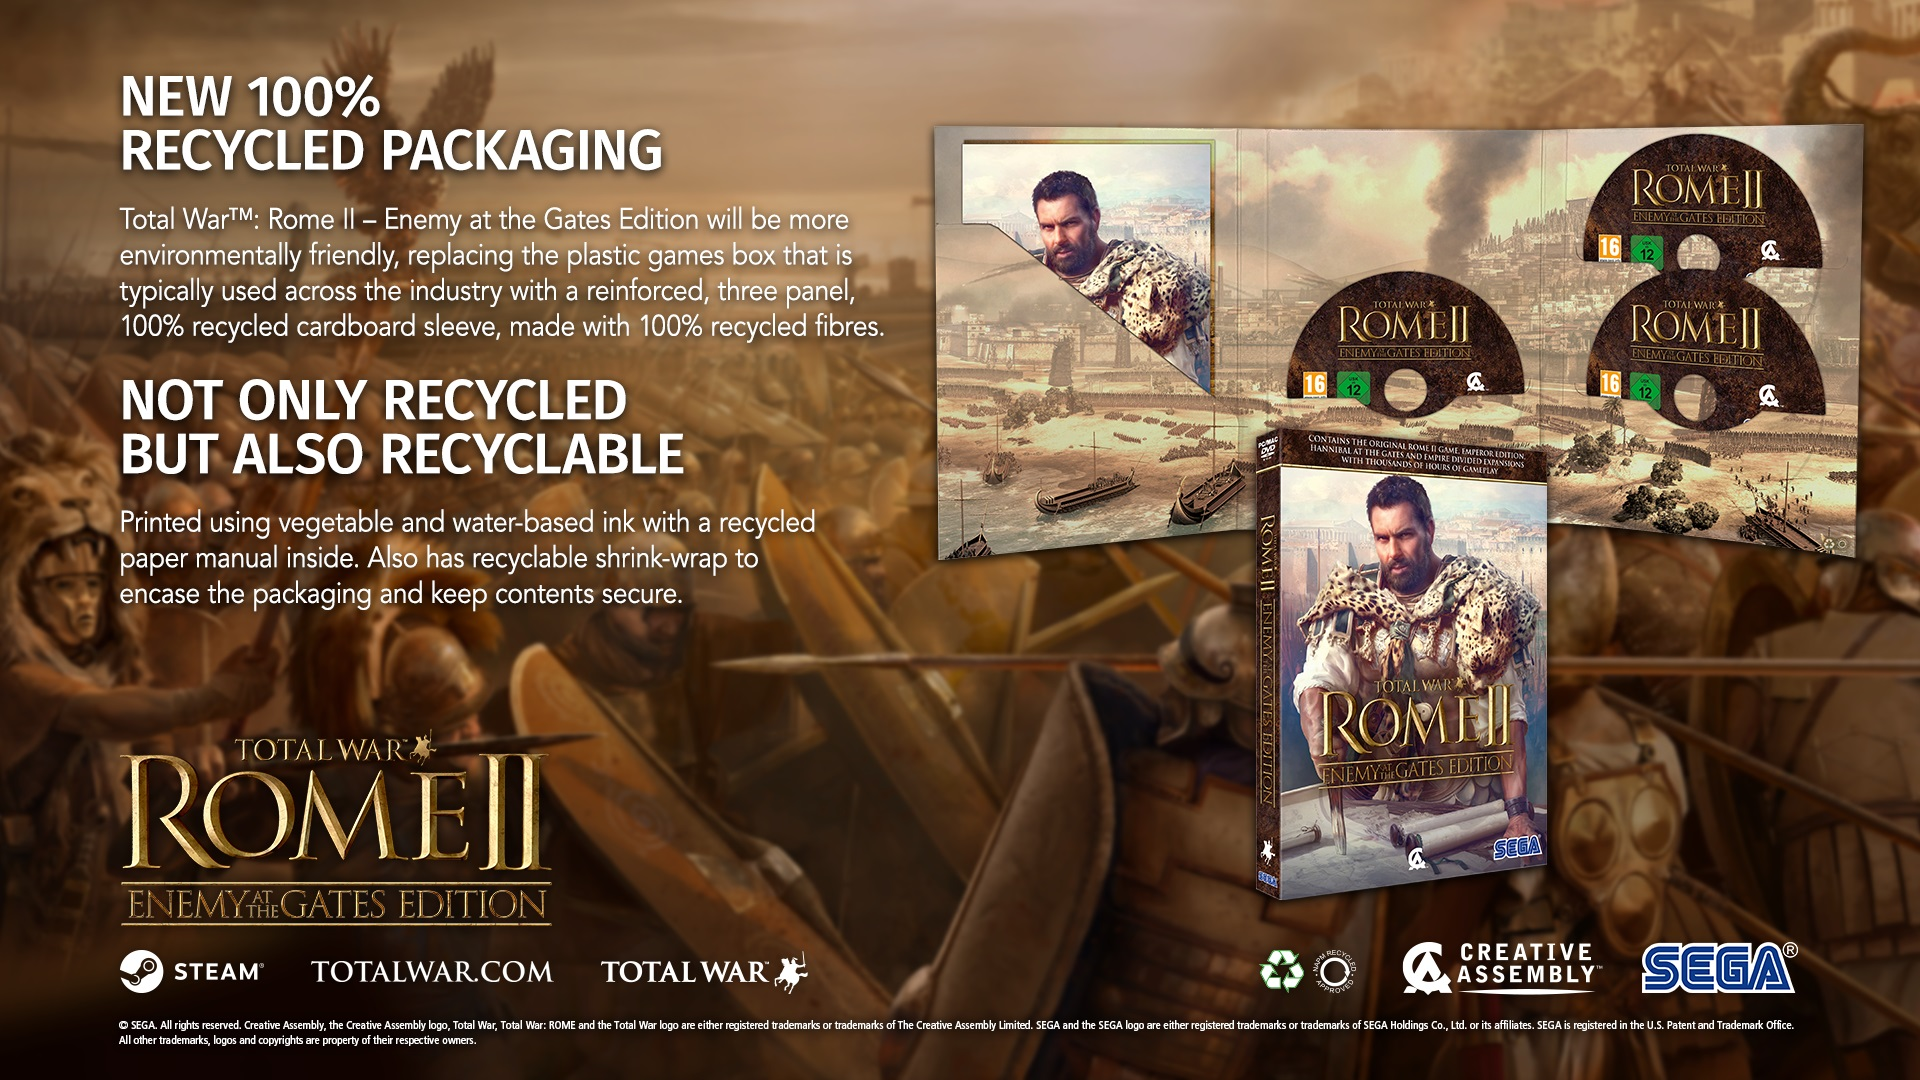 SEGA Europe commits to recycled cardboard boxes for all PC games